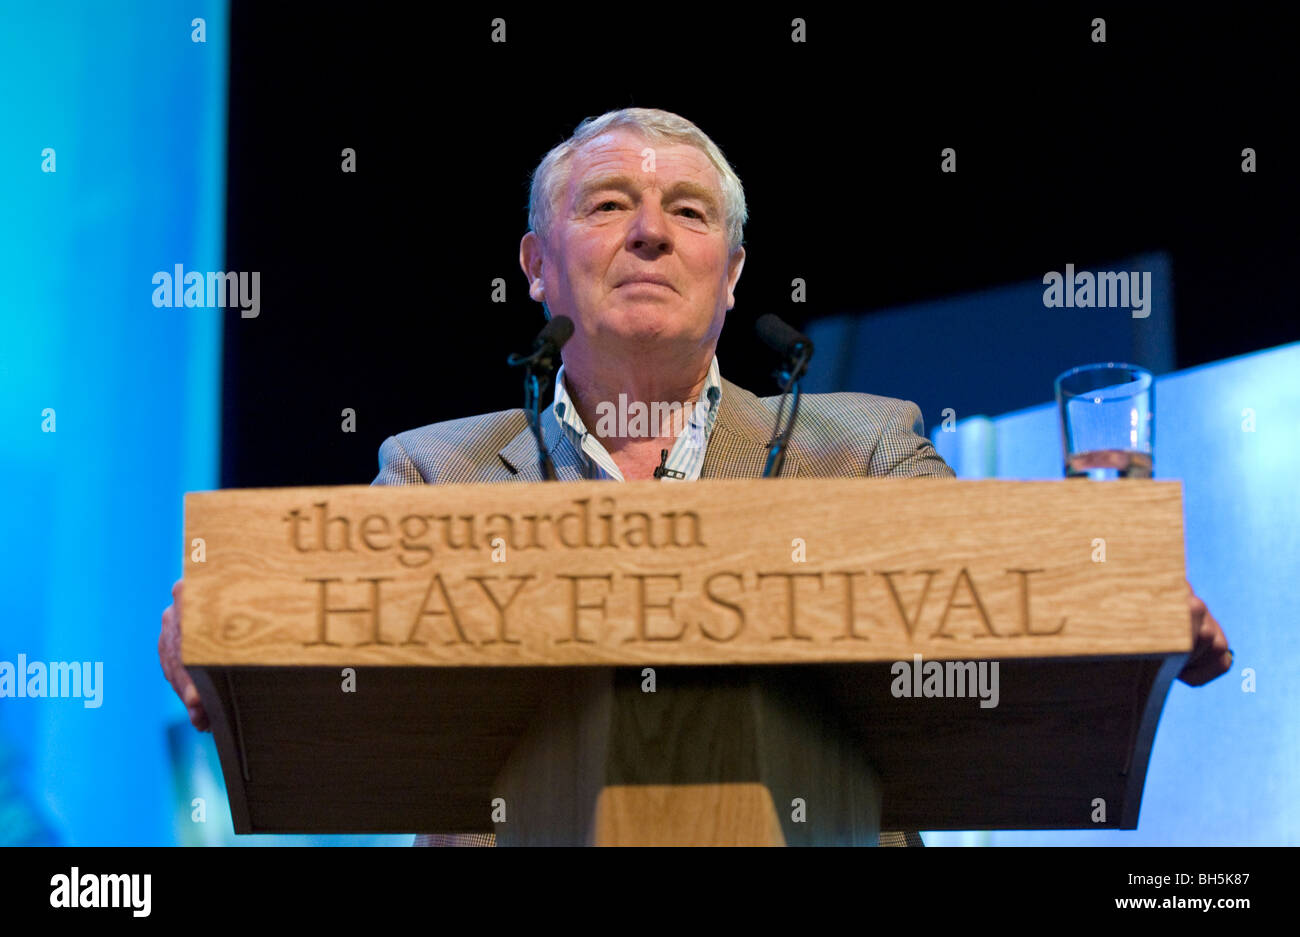 British politician and international diplomat Paddy Ashdown giving the Joseph Rotblat Lecture at Hay Festival 2009. - Stock Image